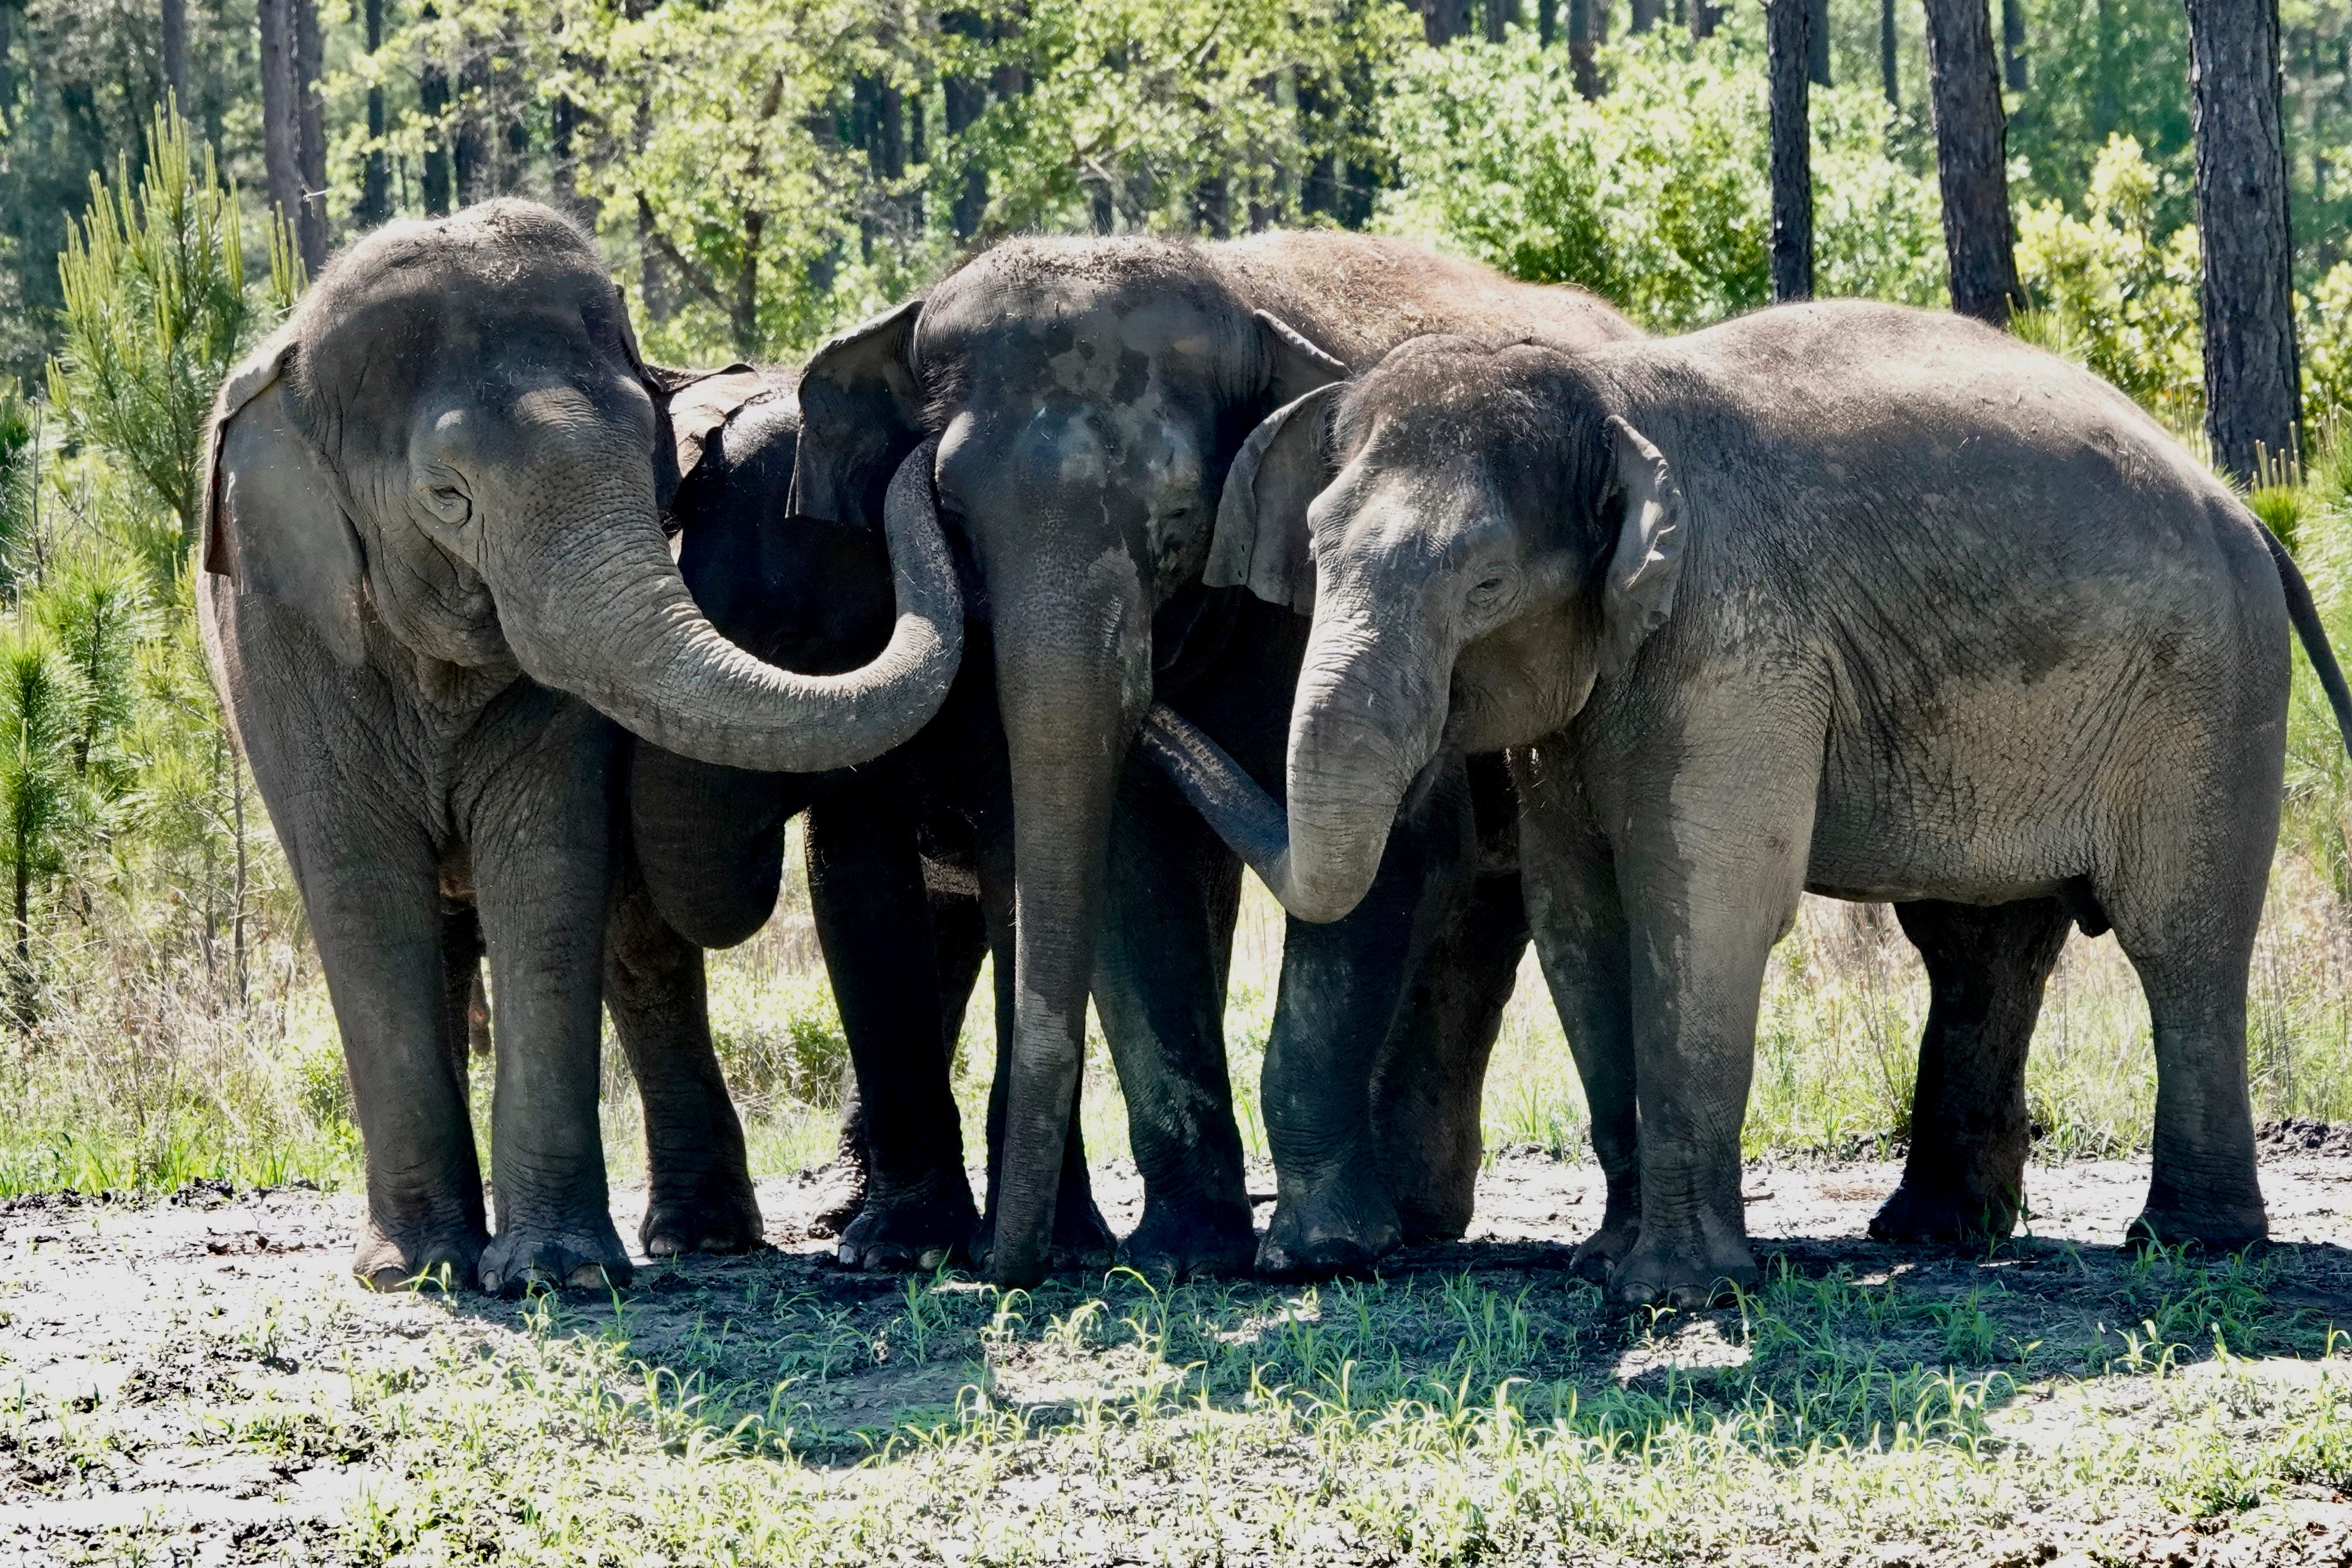 Former circus elephants begin to arrive at Florida sanctuary 1